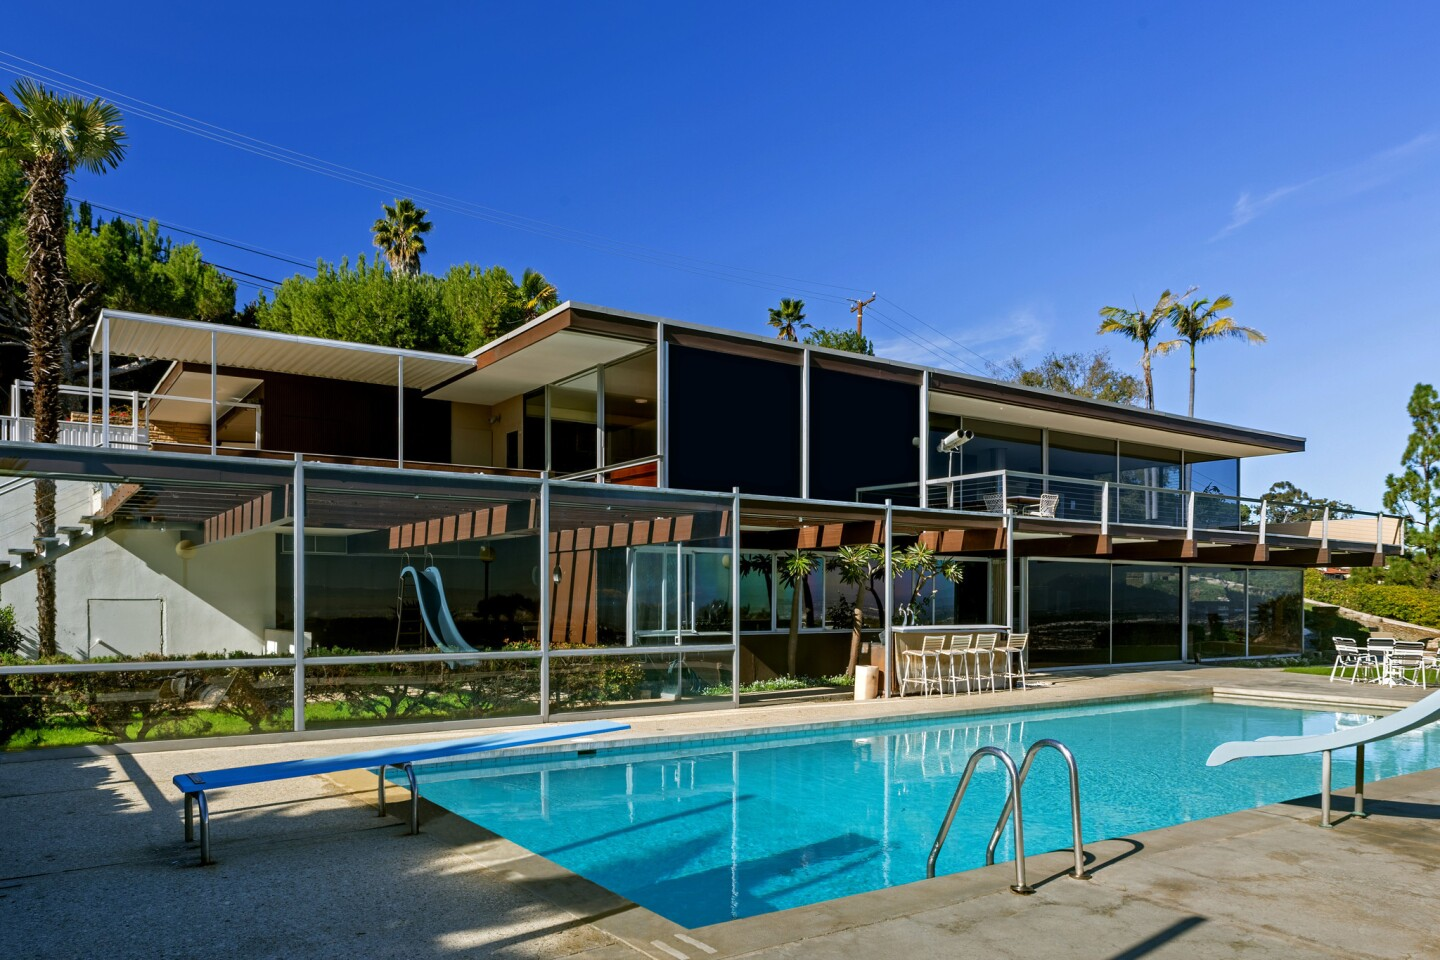 Home of the Week | A shipbuilder's Neutra in Rancho Palos Verdes